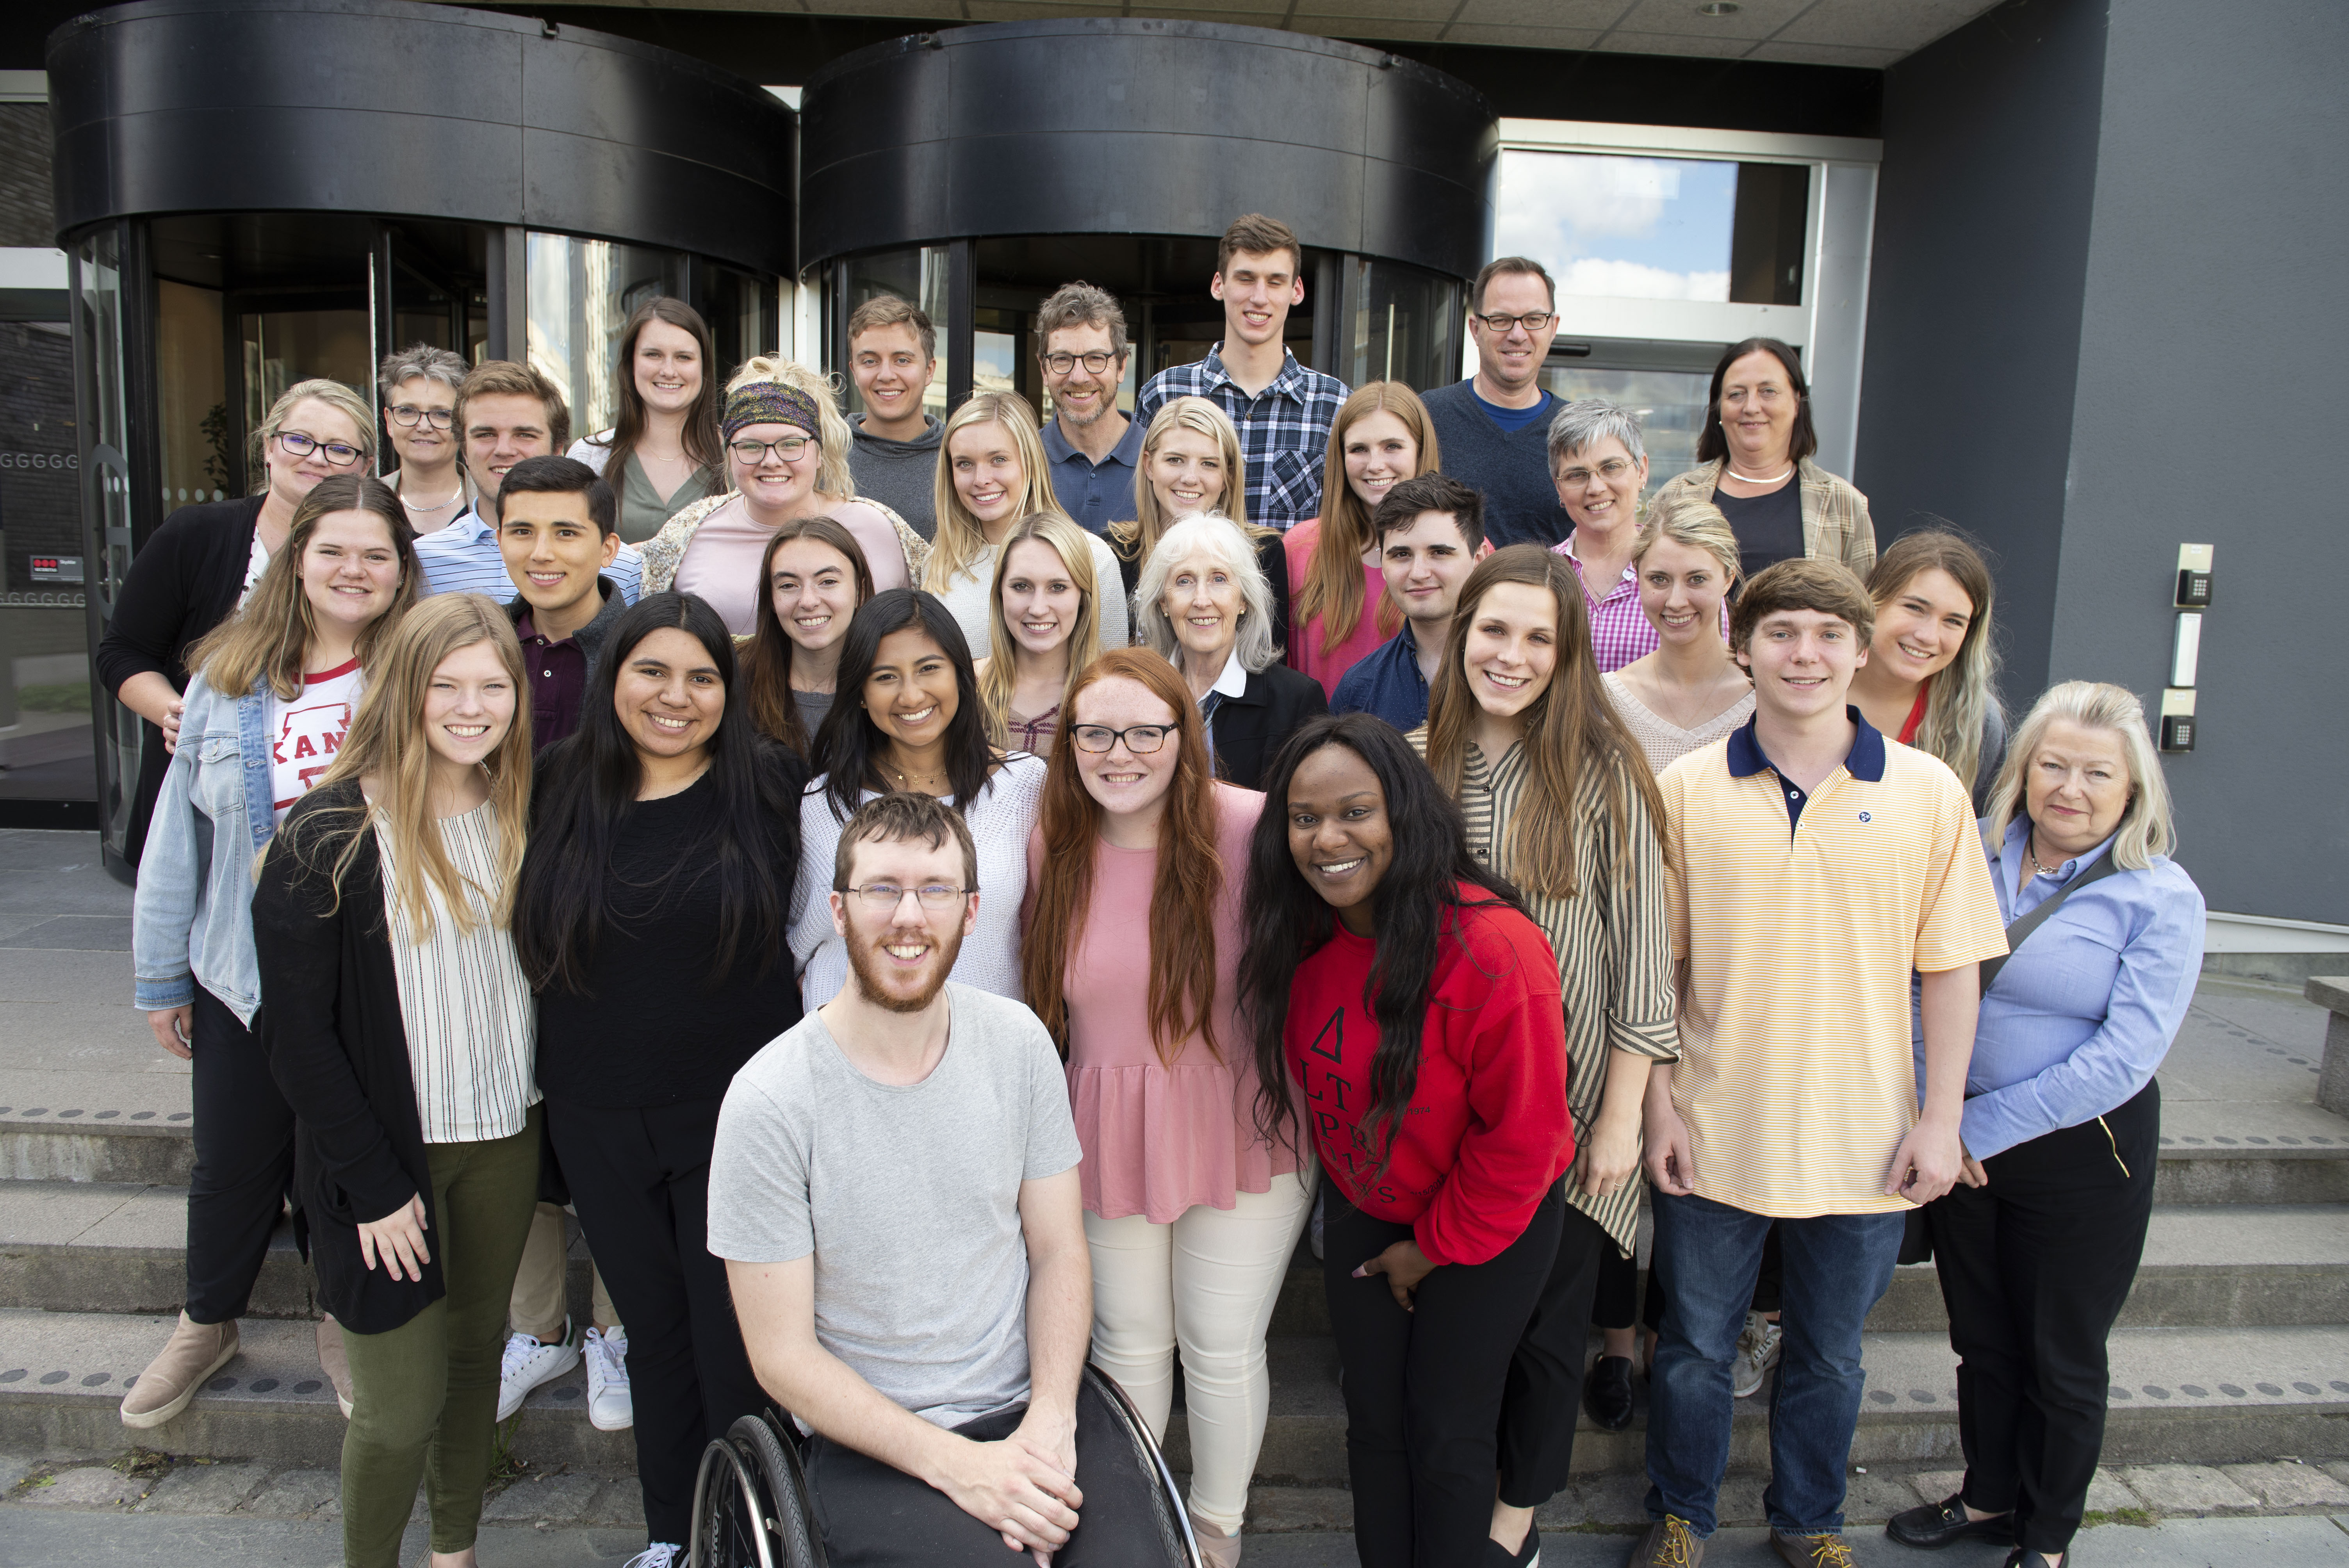 Twenty-two students and eight teachers and researchers from the University of Arkansas visited the School of Health and Welfare for two weeks in May. Christoffer Wadman, teaching assistant at the School of Engineering, told the American guests about his experience with the Swedish healthcare system.